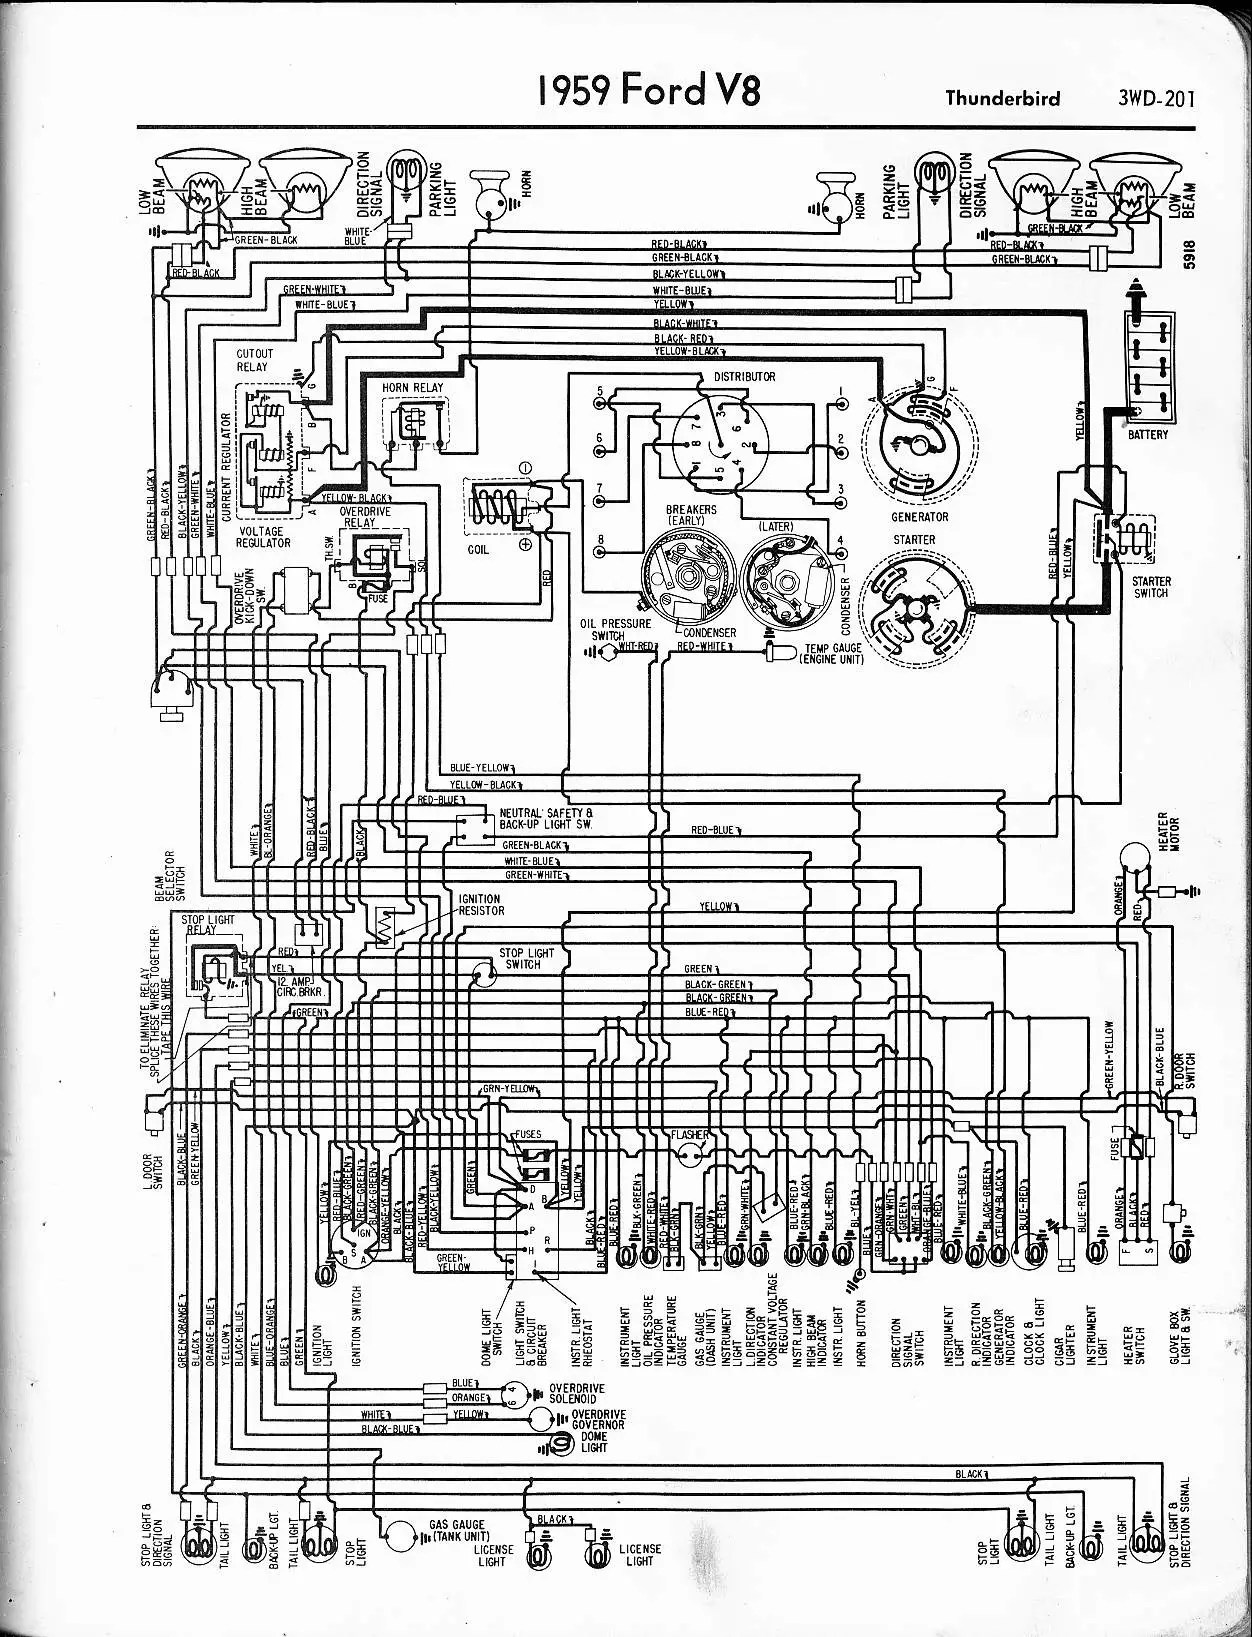 hight resolution of 1970 ford thunderbird fuse box diagram wiring diagram blog 1970 ford thunderbird fuse box diagram